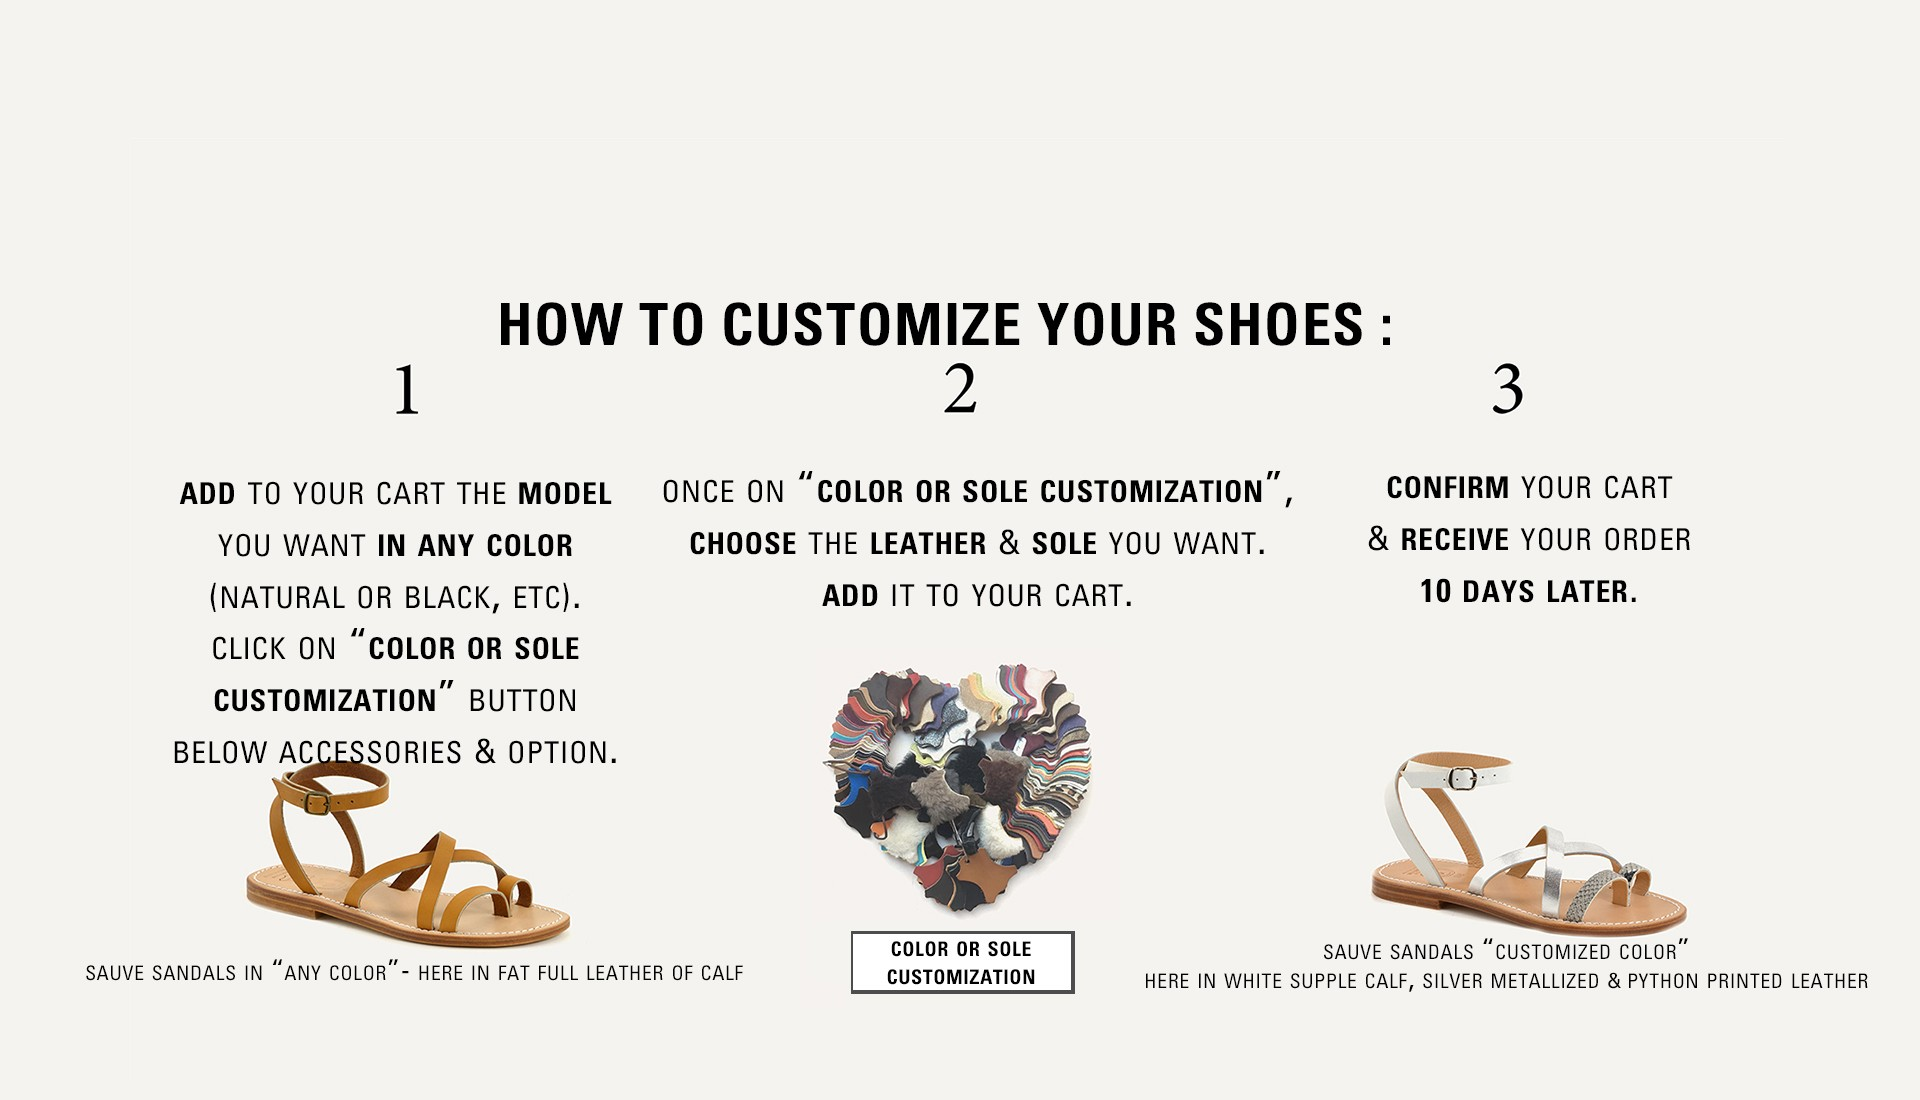 Customize your shoes !